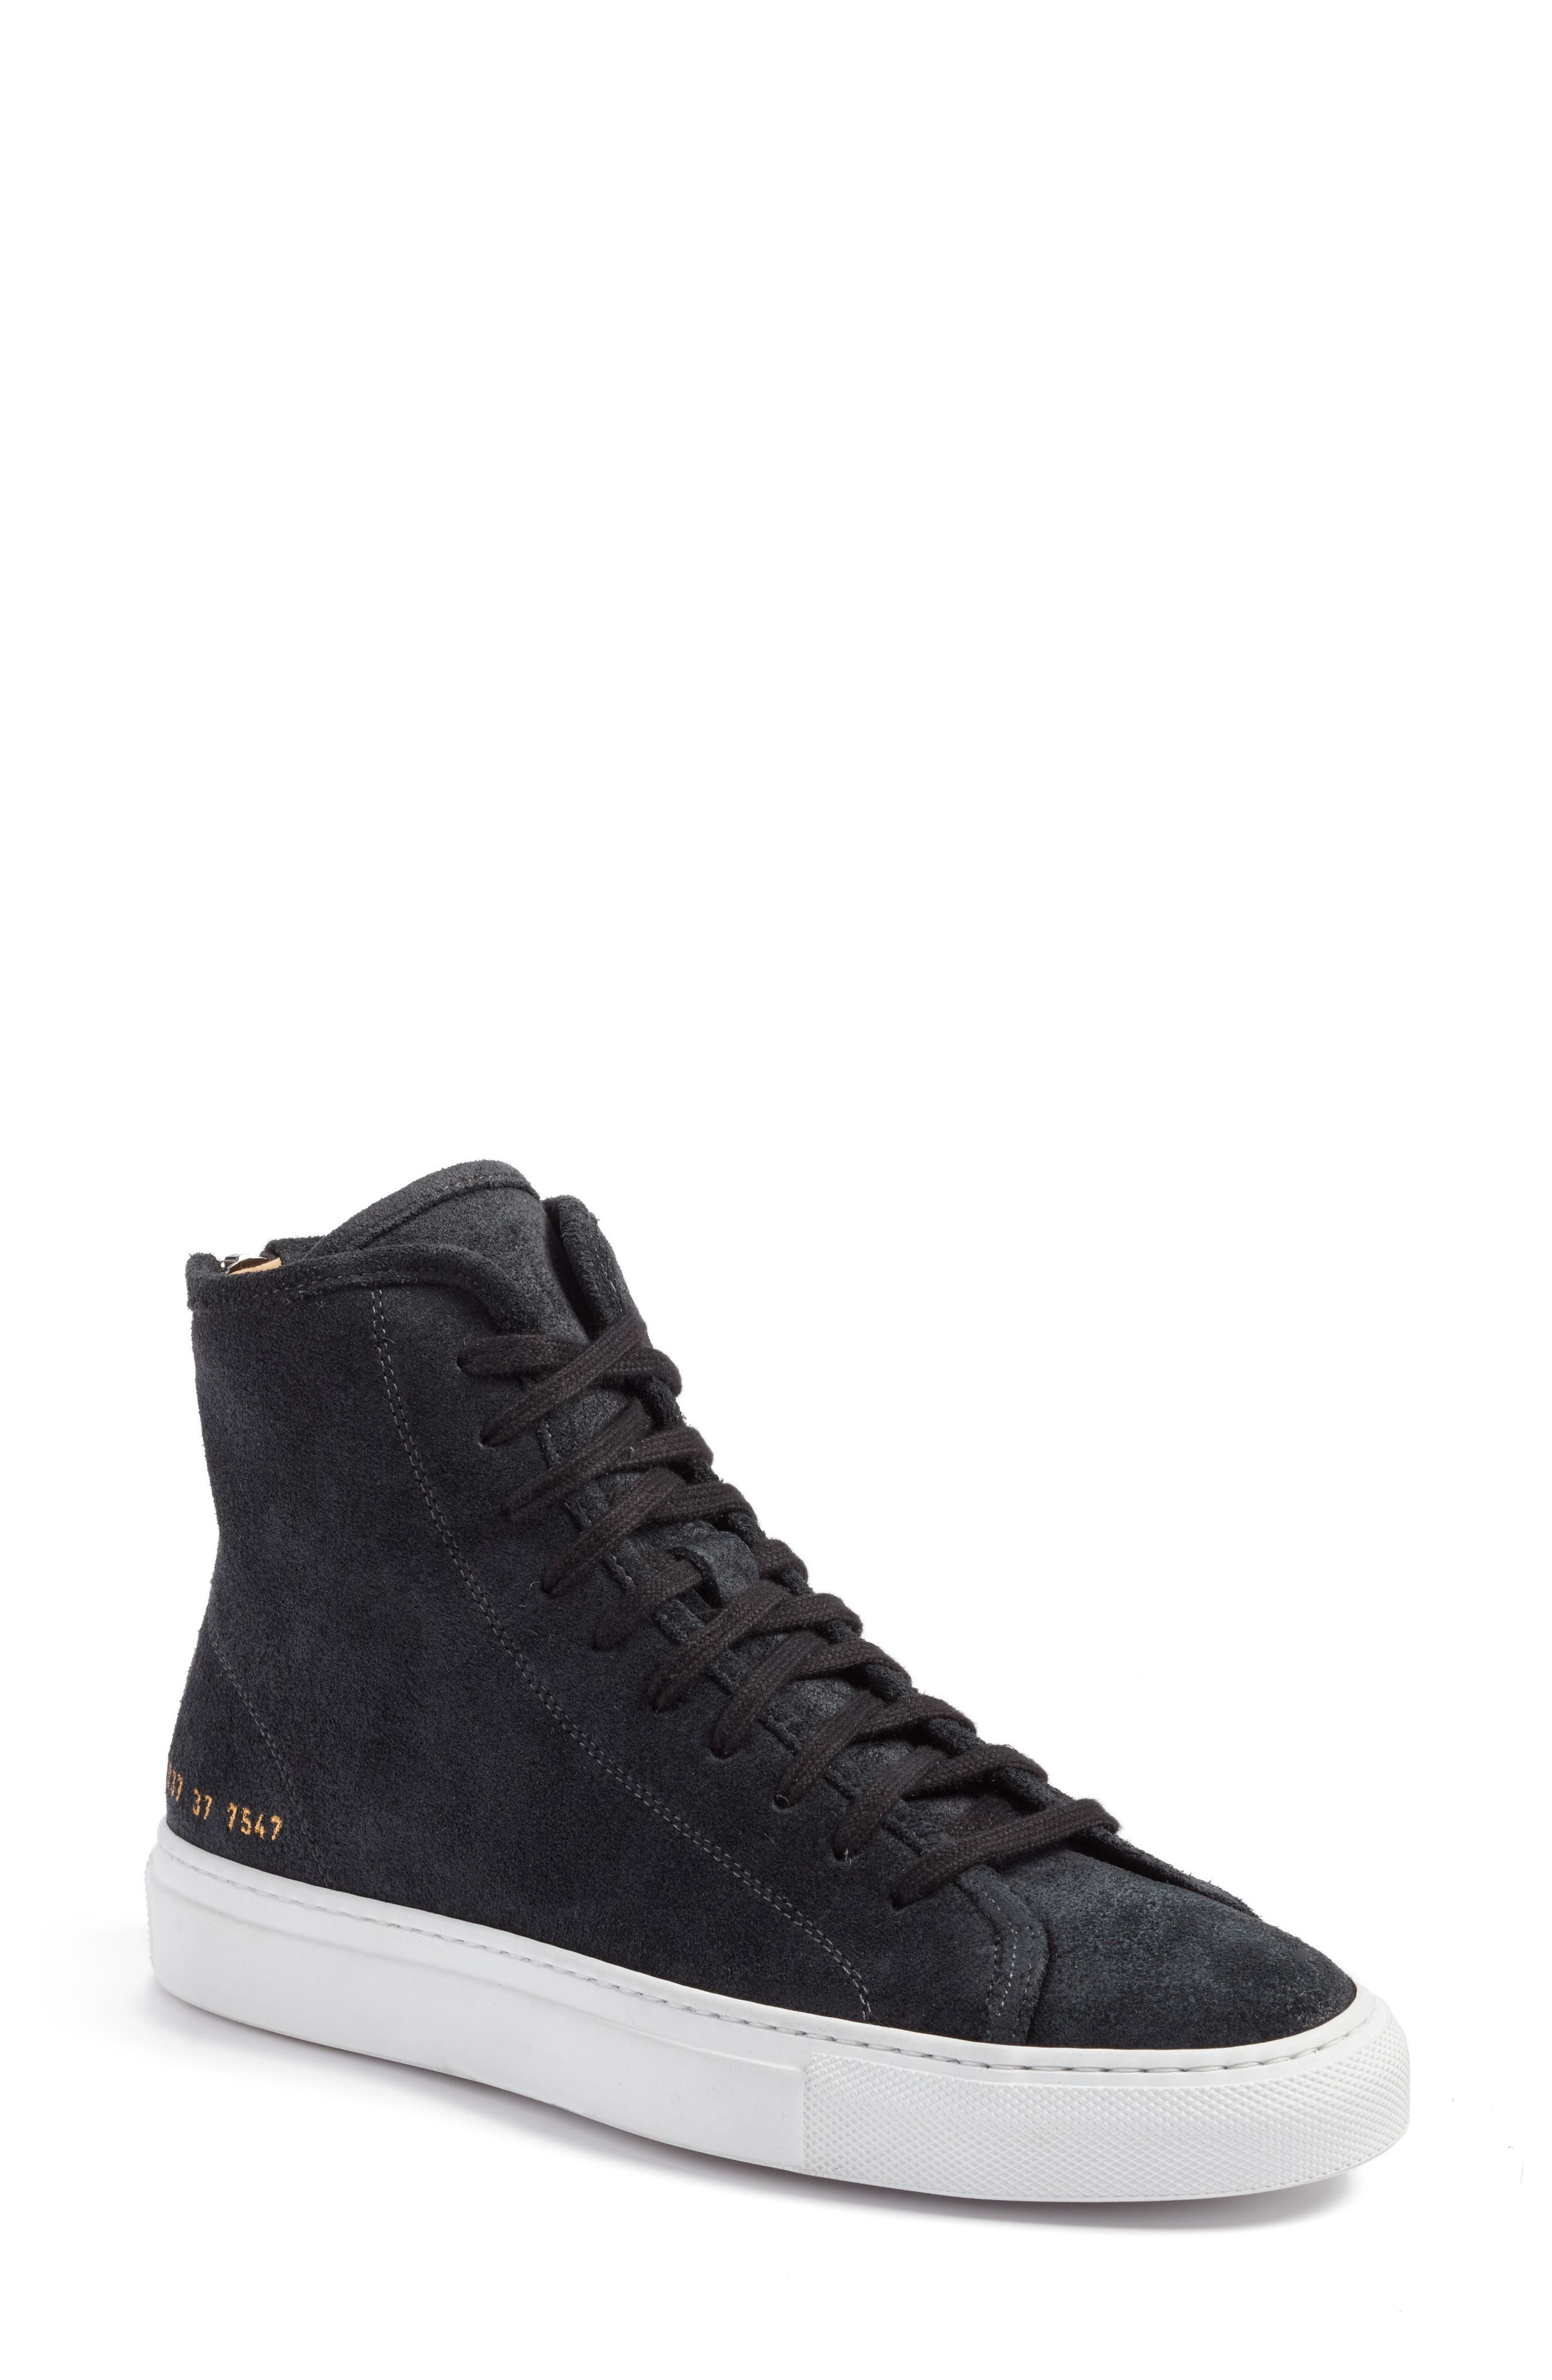 Common Projects Tournament High Top Sneakers (Women)